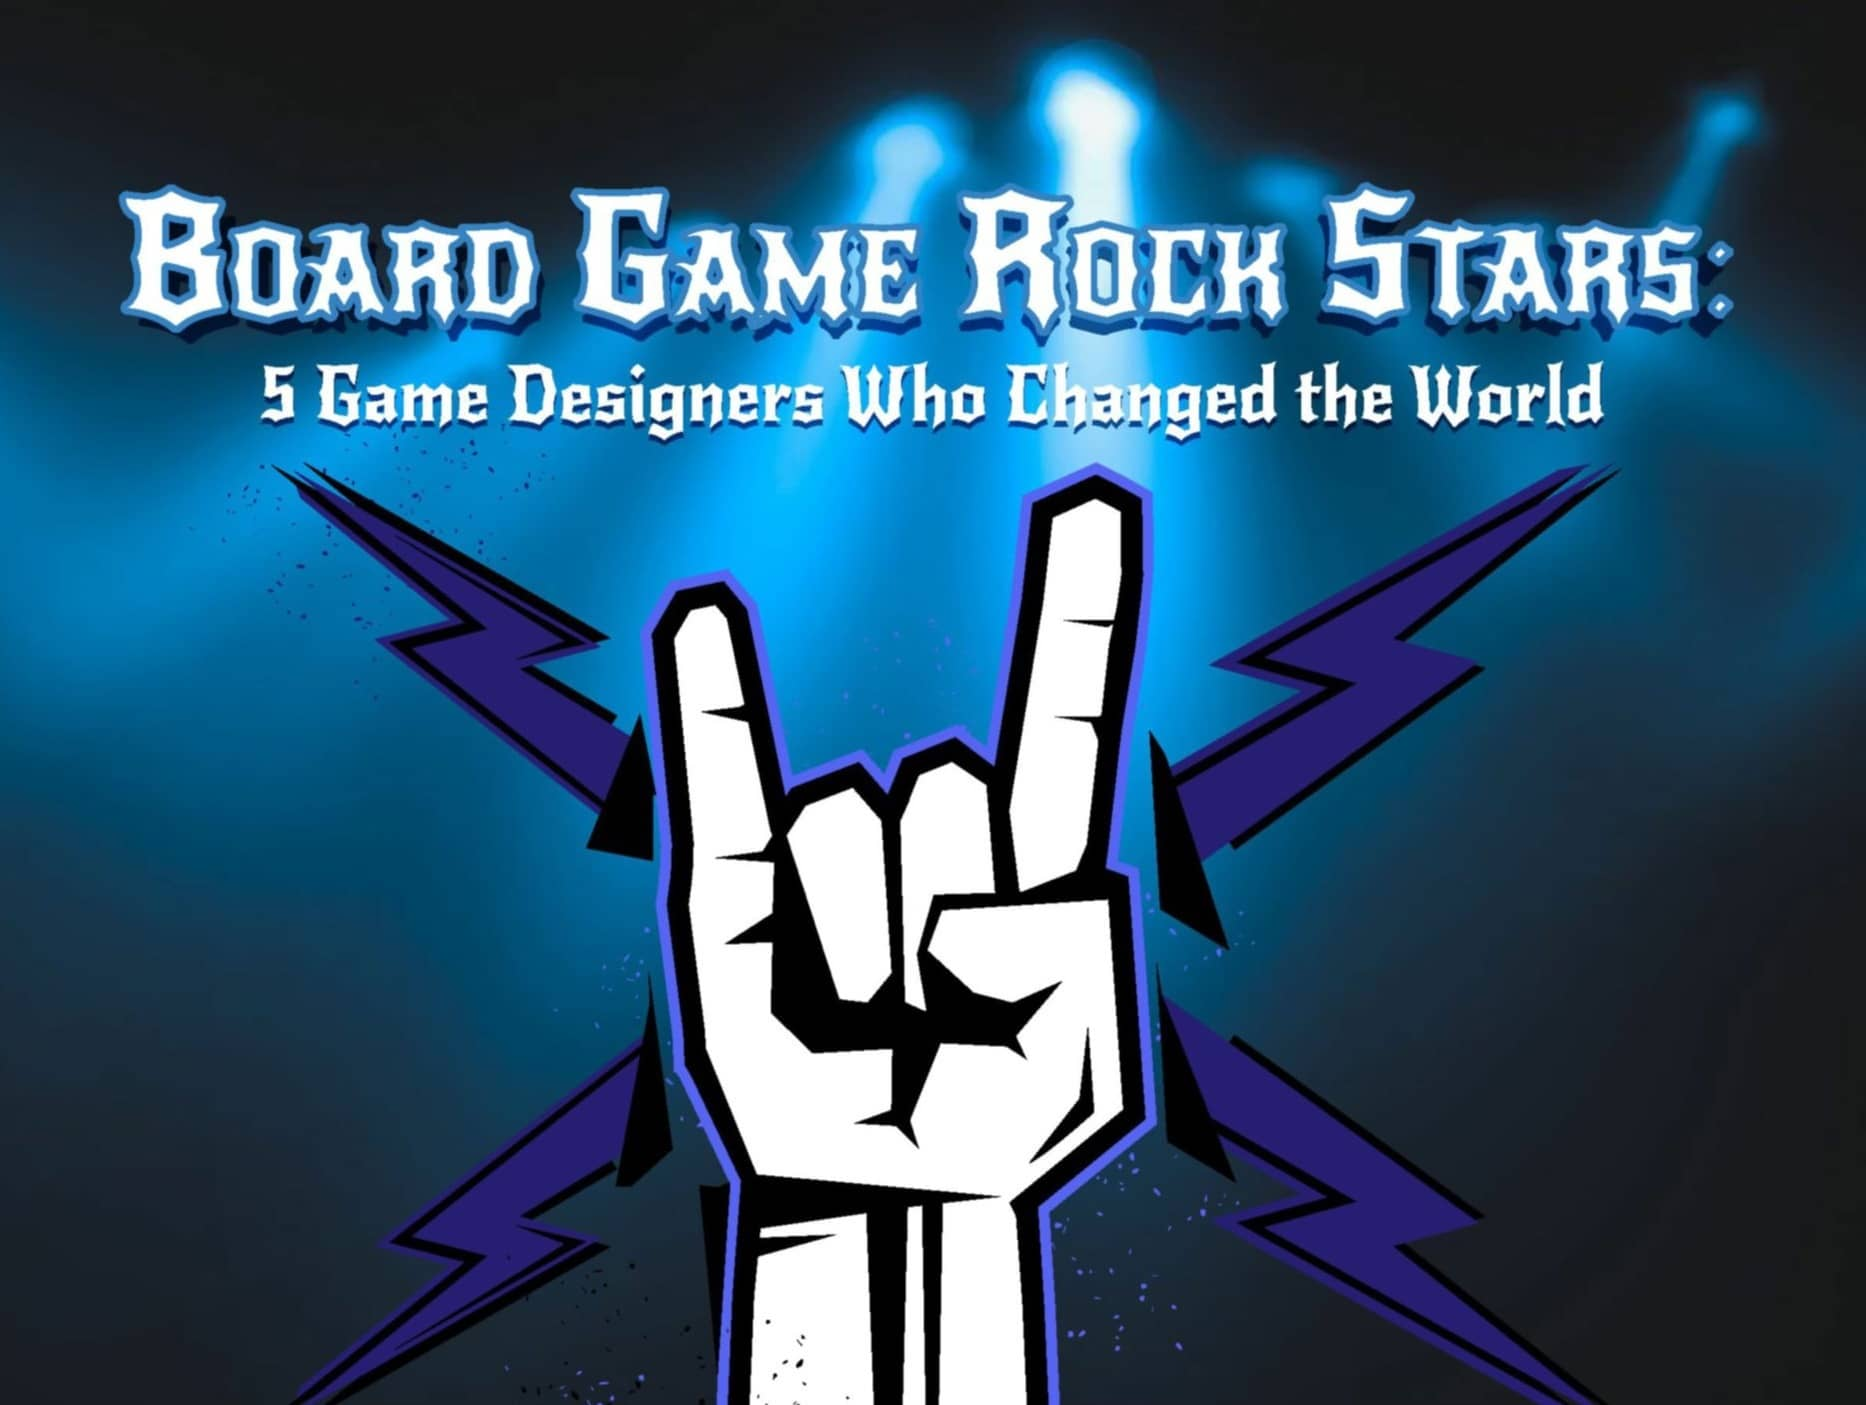 BOARD GAME ROCK STARS